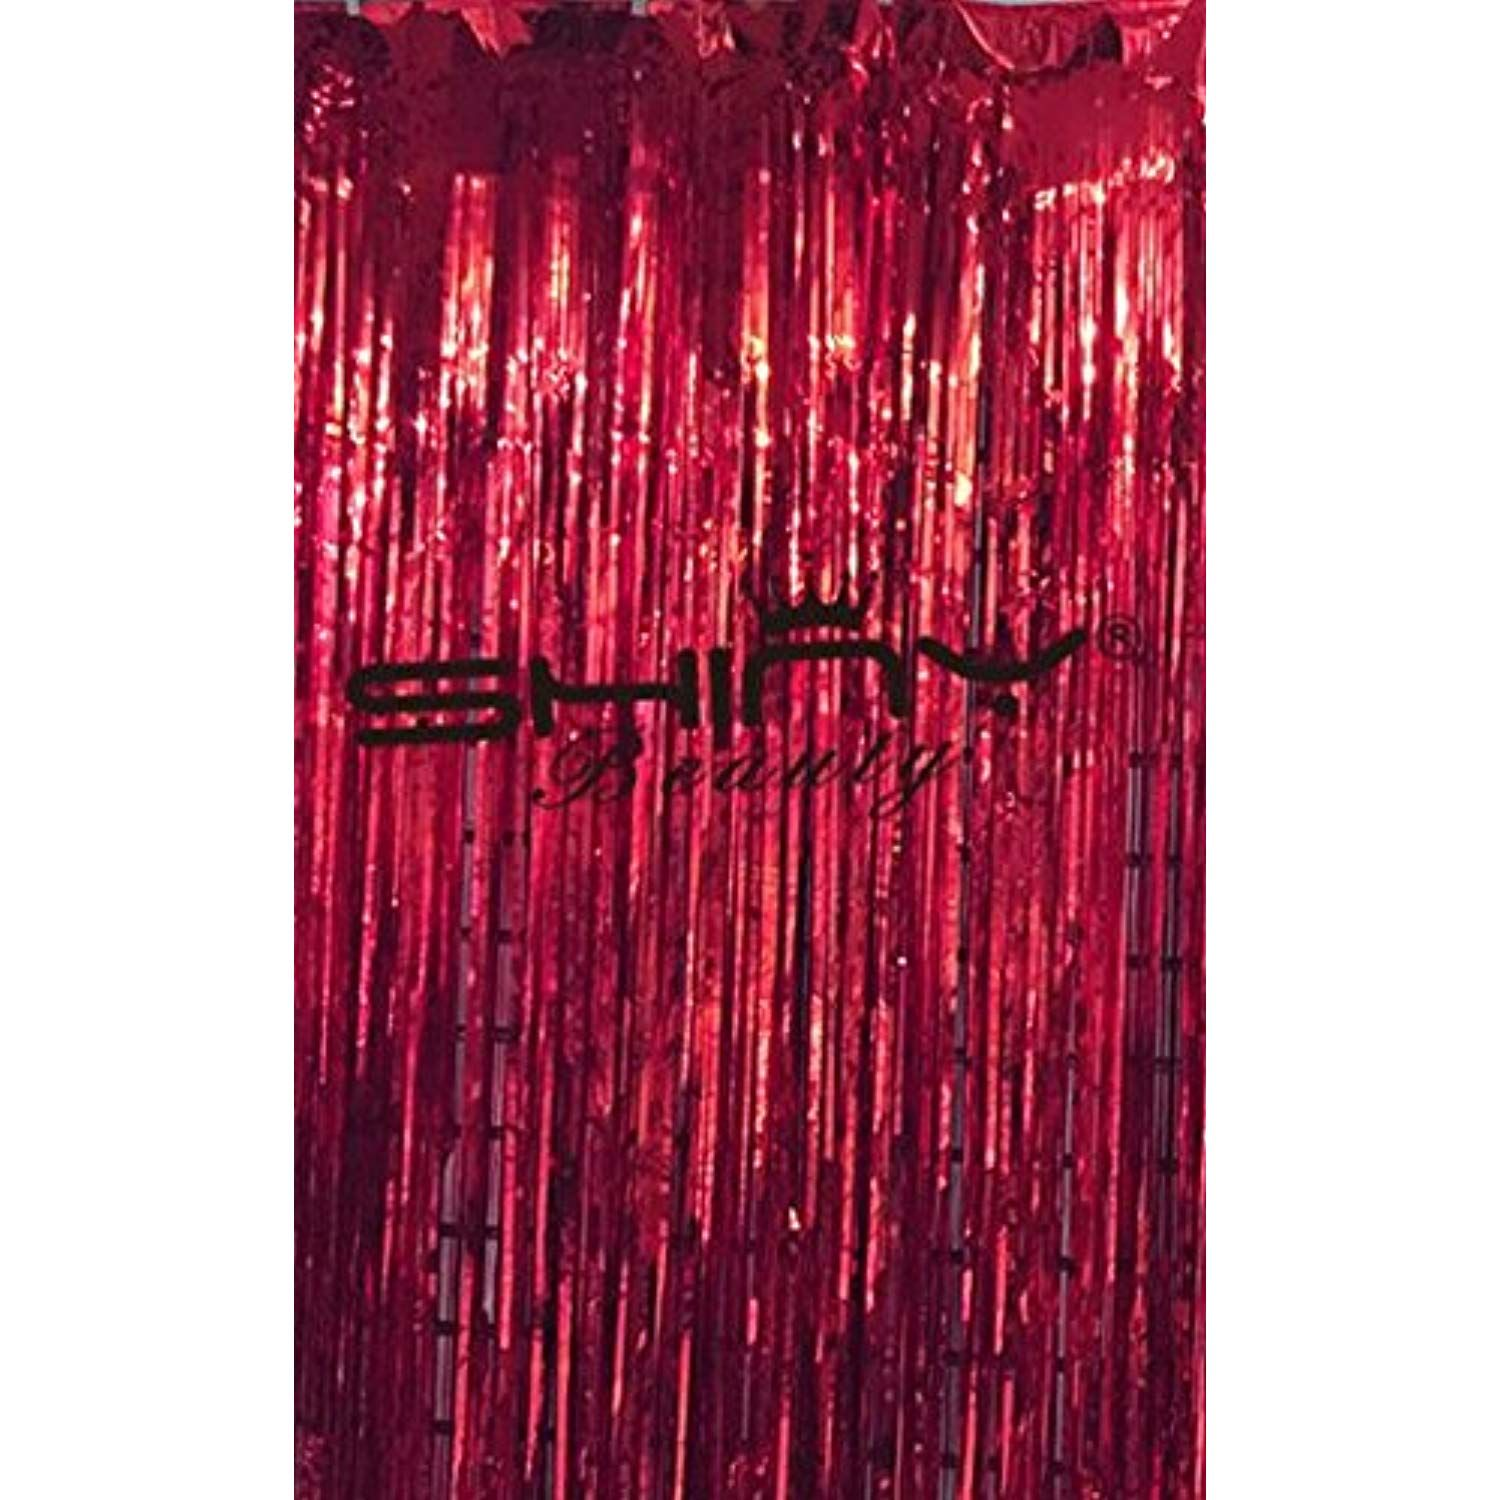 Shinybeauty Tinsel Foil Fringe Curtain 3ftx9ft Red Metallic Foil